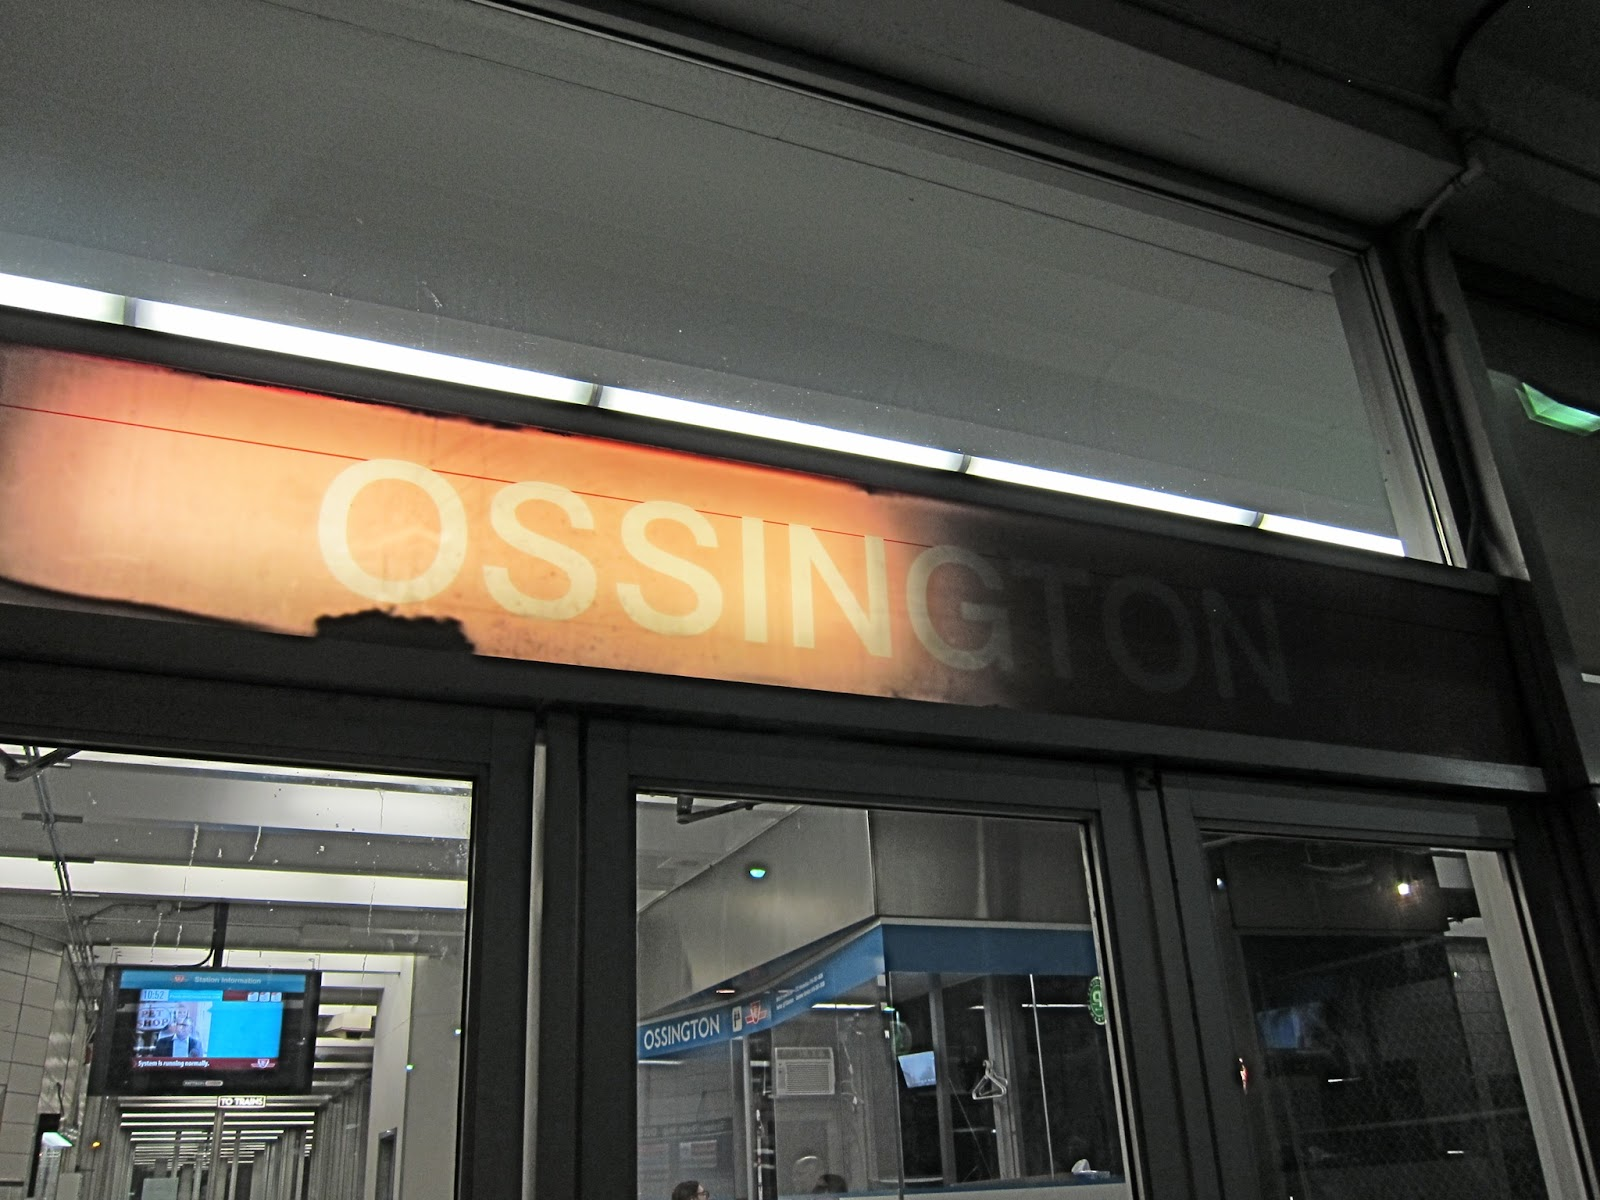 Ossington main entrance sign